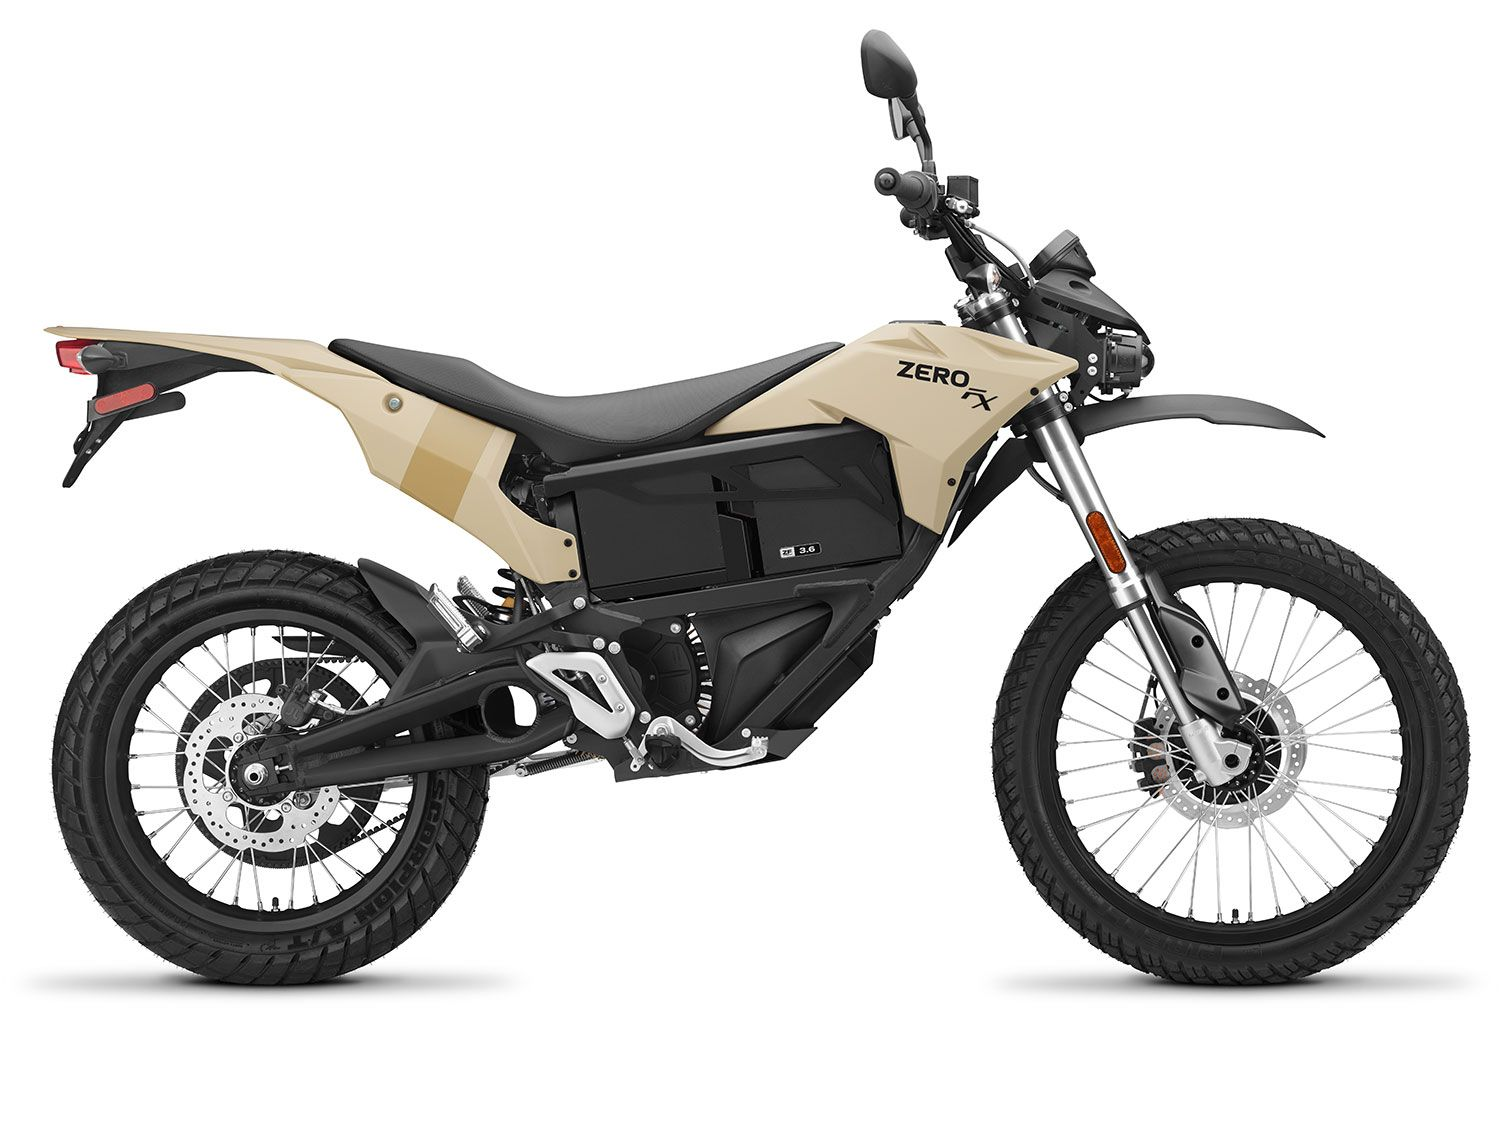 Zero Motorcycles Europe 2020 Zero Sr F Electric Motorcycle Electric Dirt Bike Dual Sport Motorcycle Electric Motorcycle